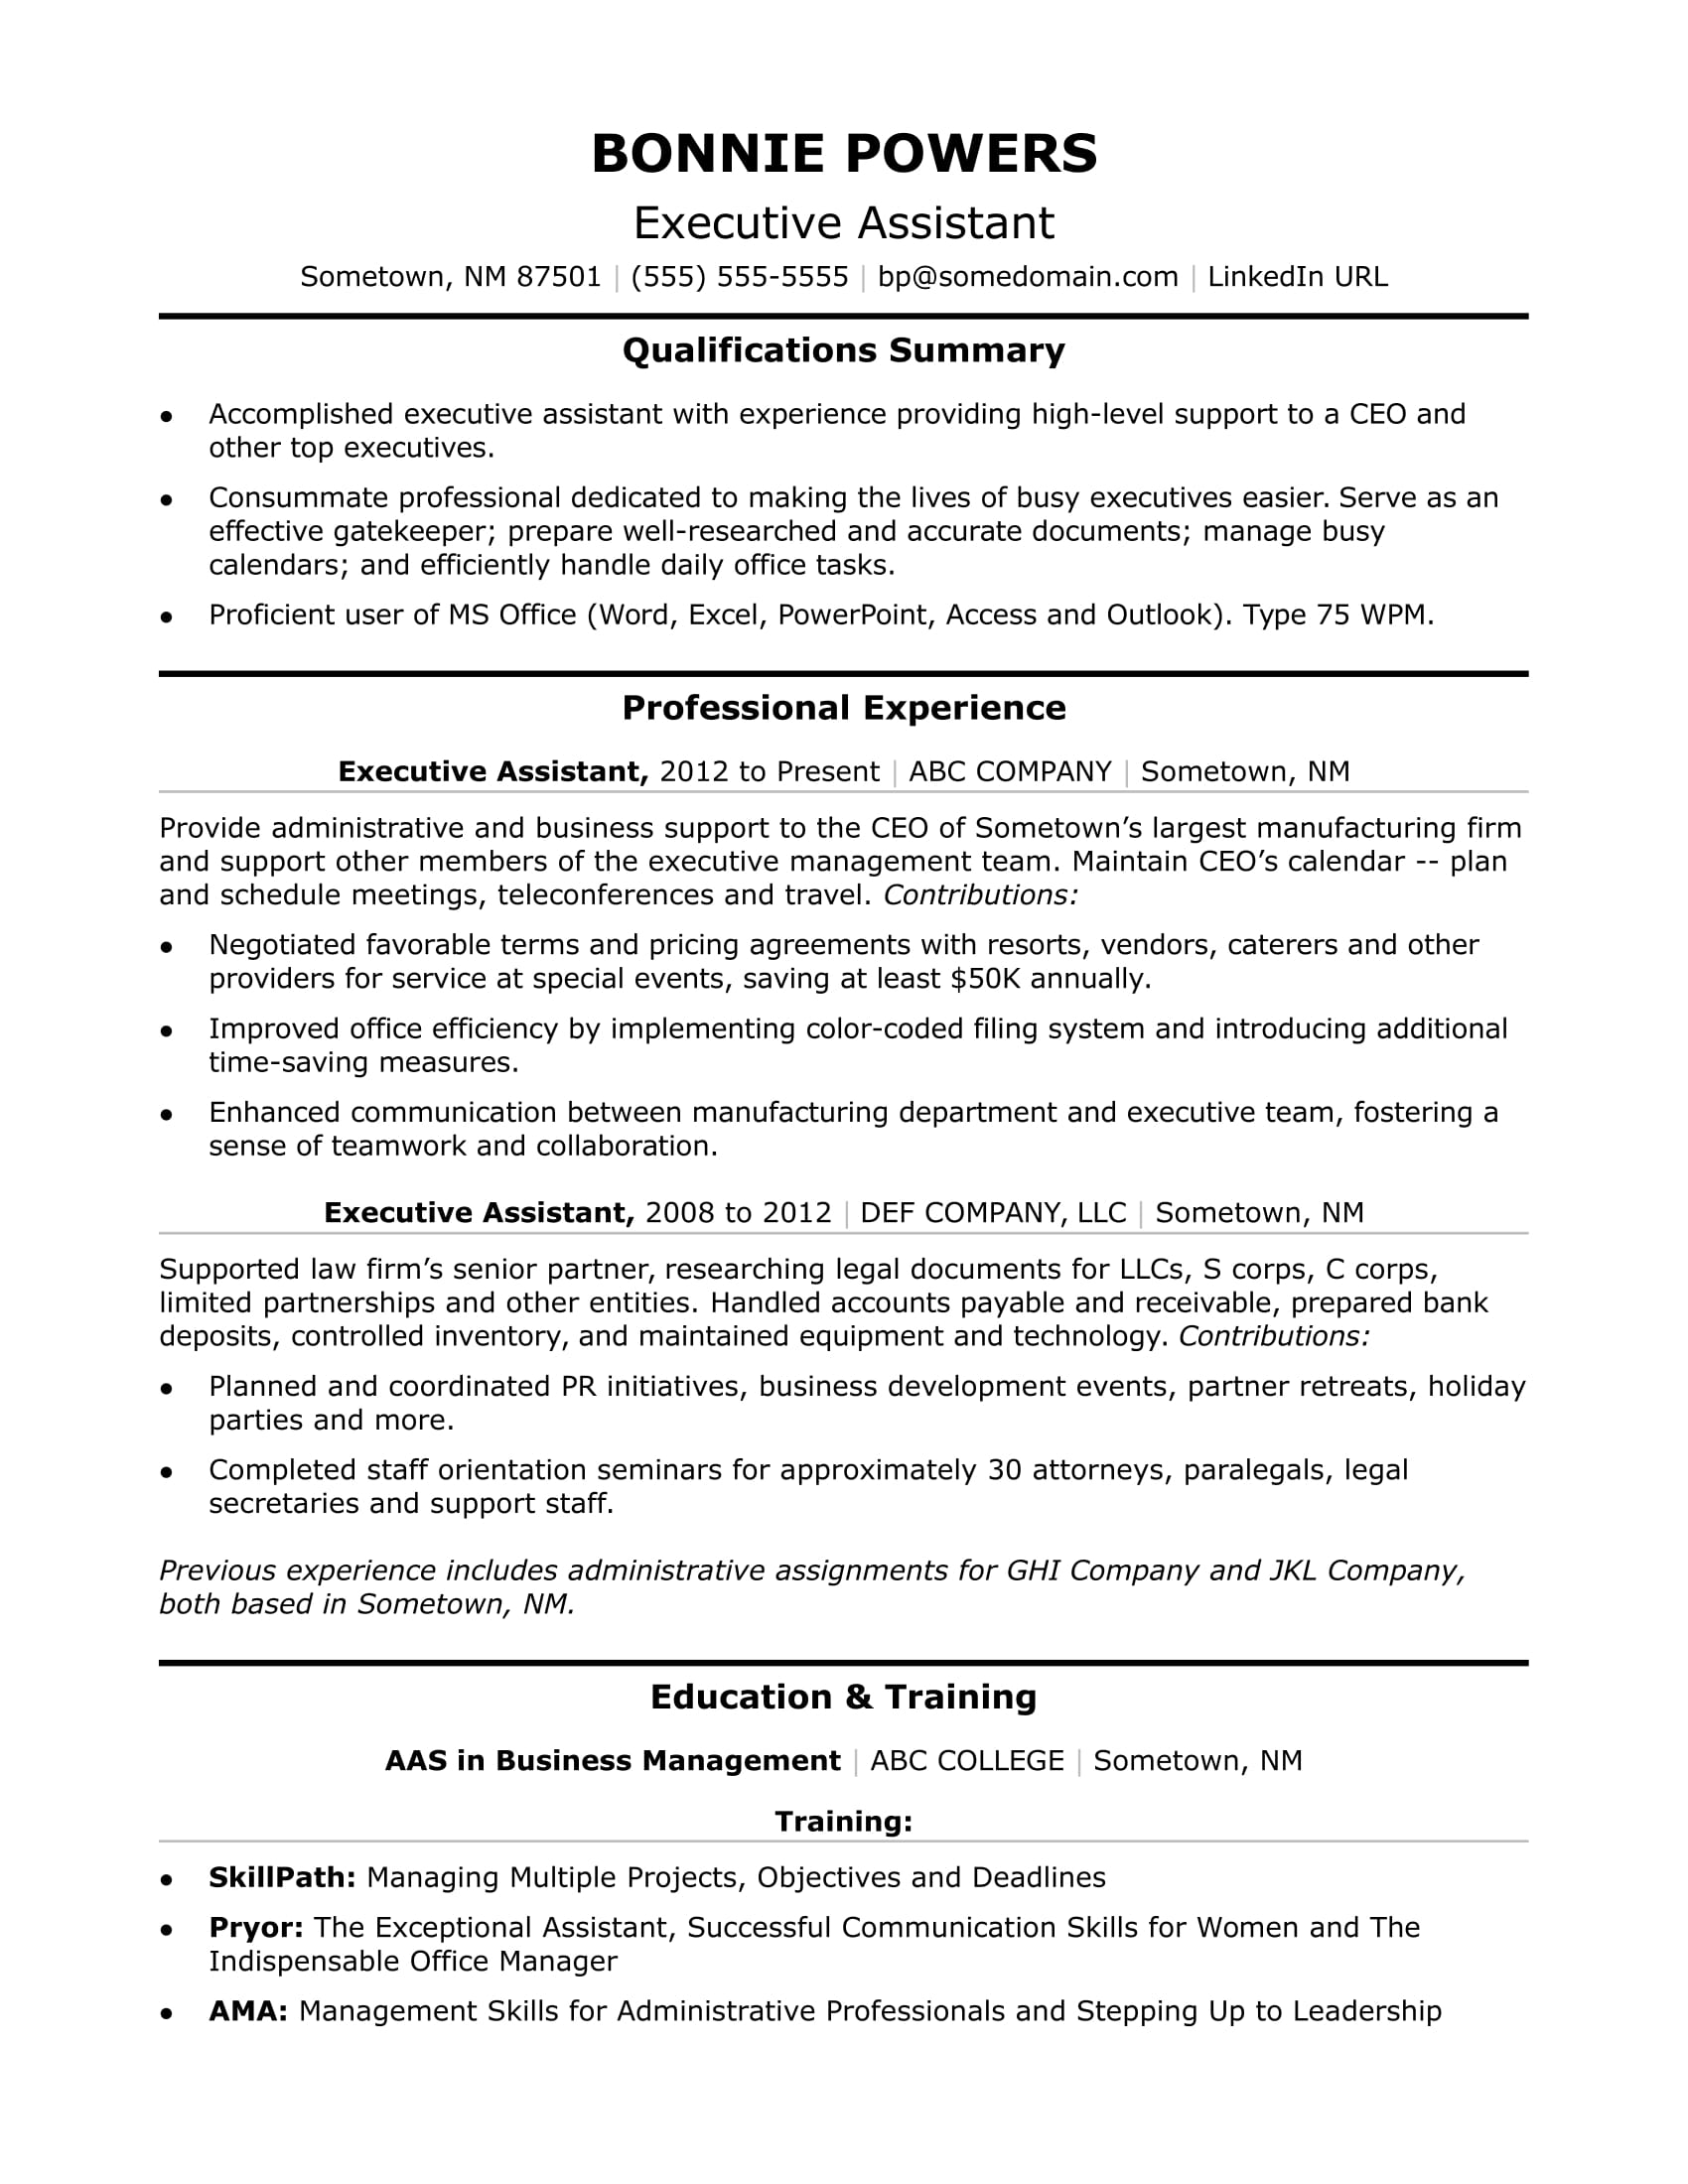 executive administrative assistant resume sample monster title examples for pmo fresher Resume Resume Title Examples For Administrative Assistant